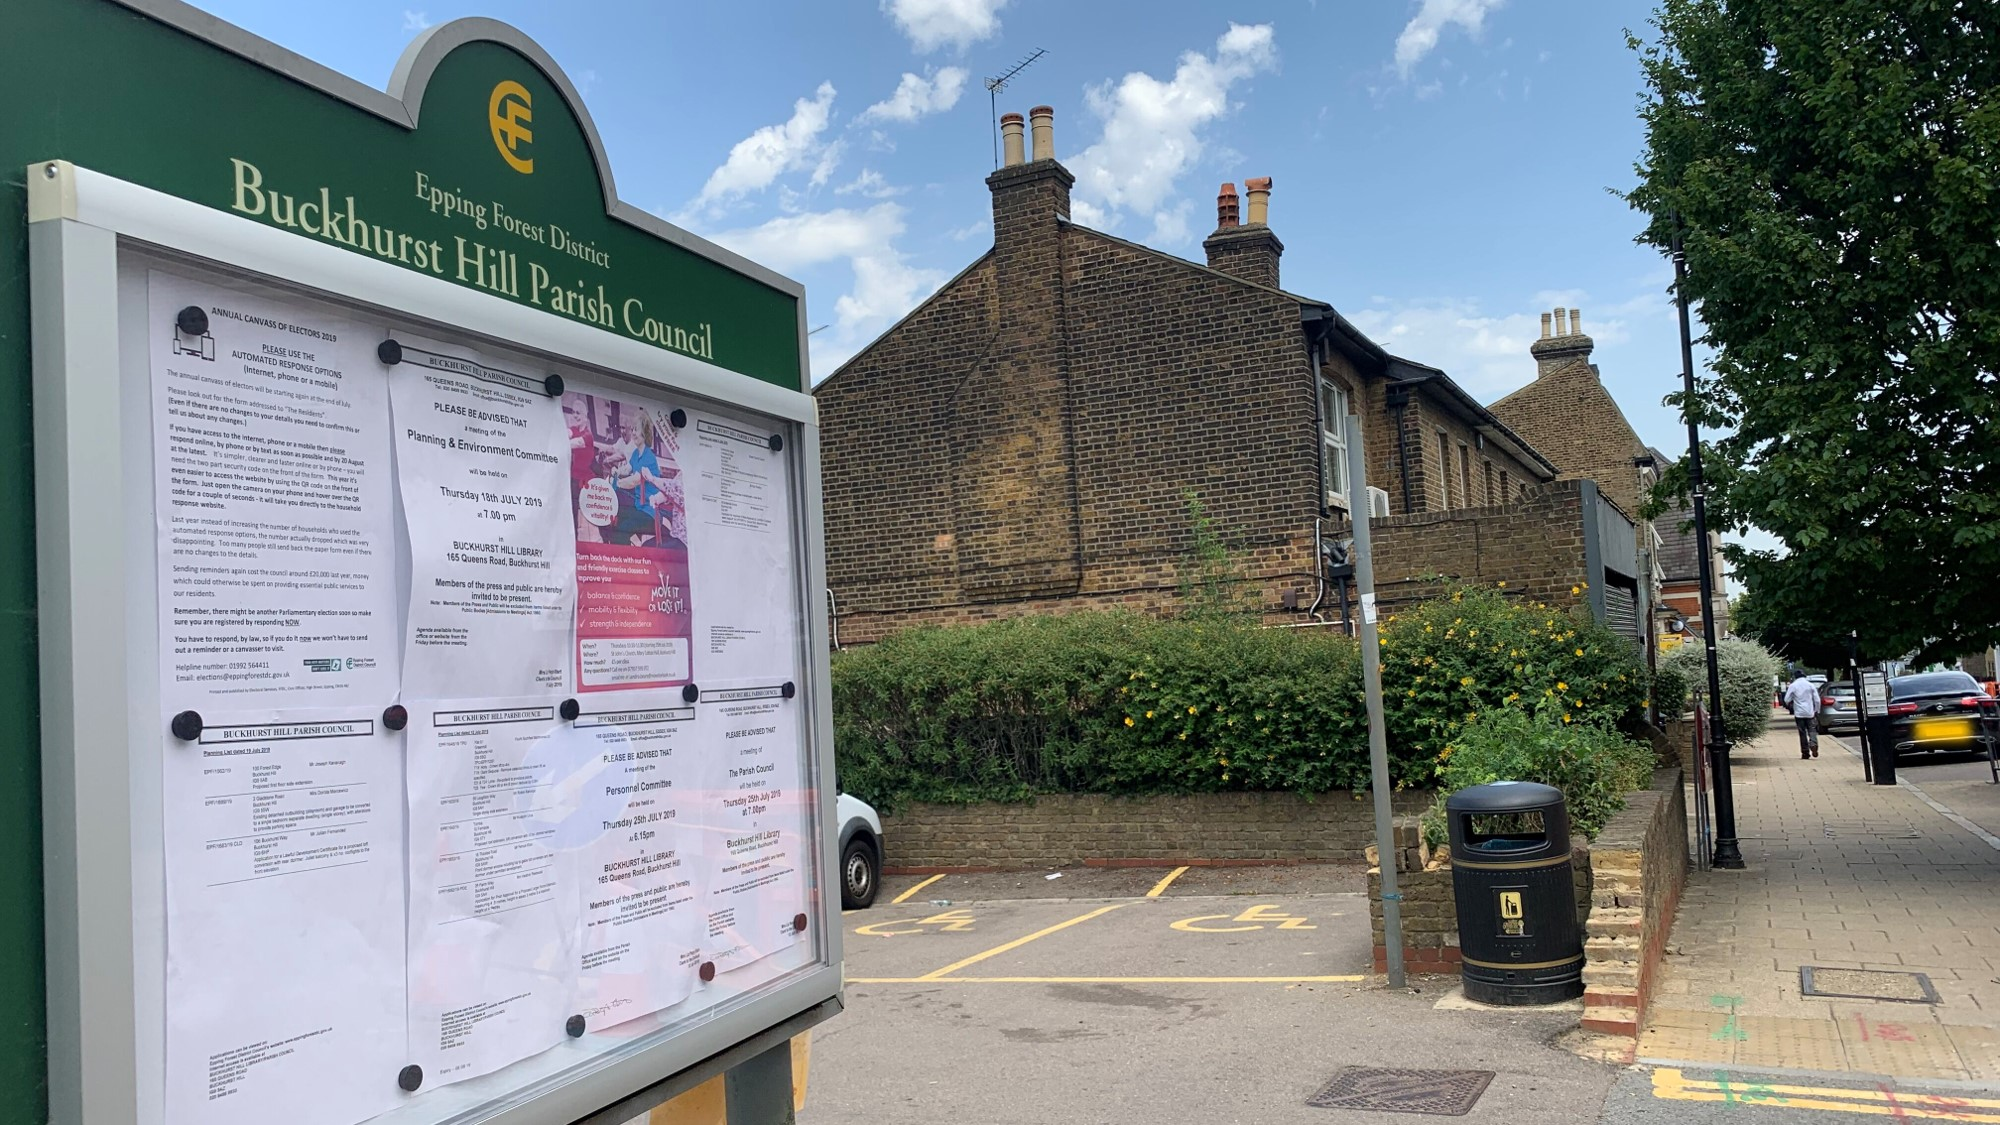 Buckhurst-Hill-Parish-Council-Noticeboard-Queens-Road.jpeg